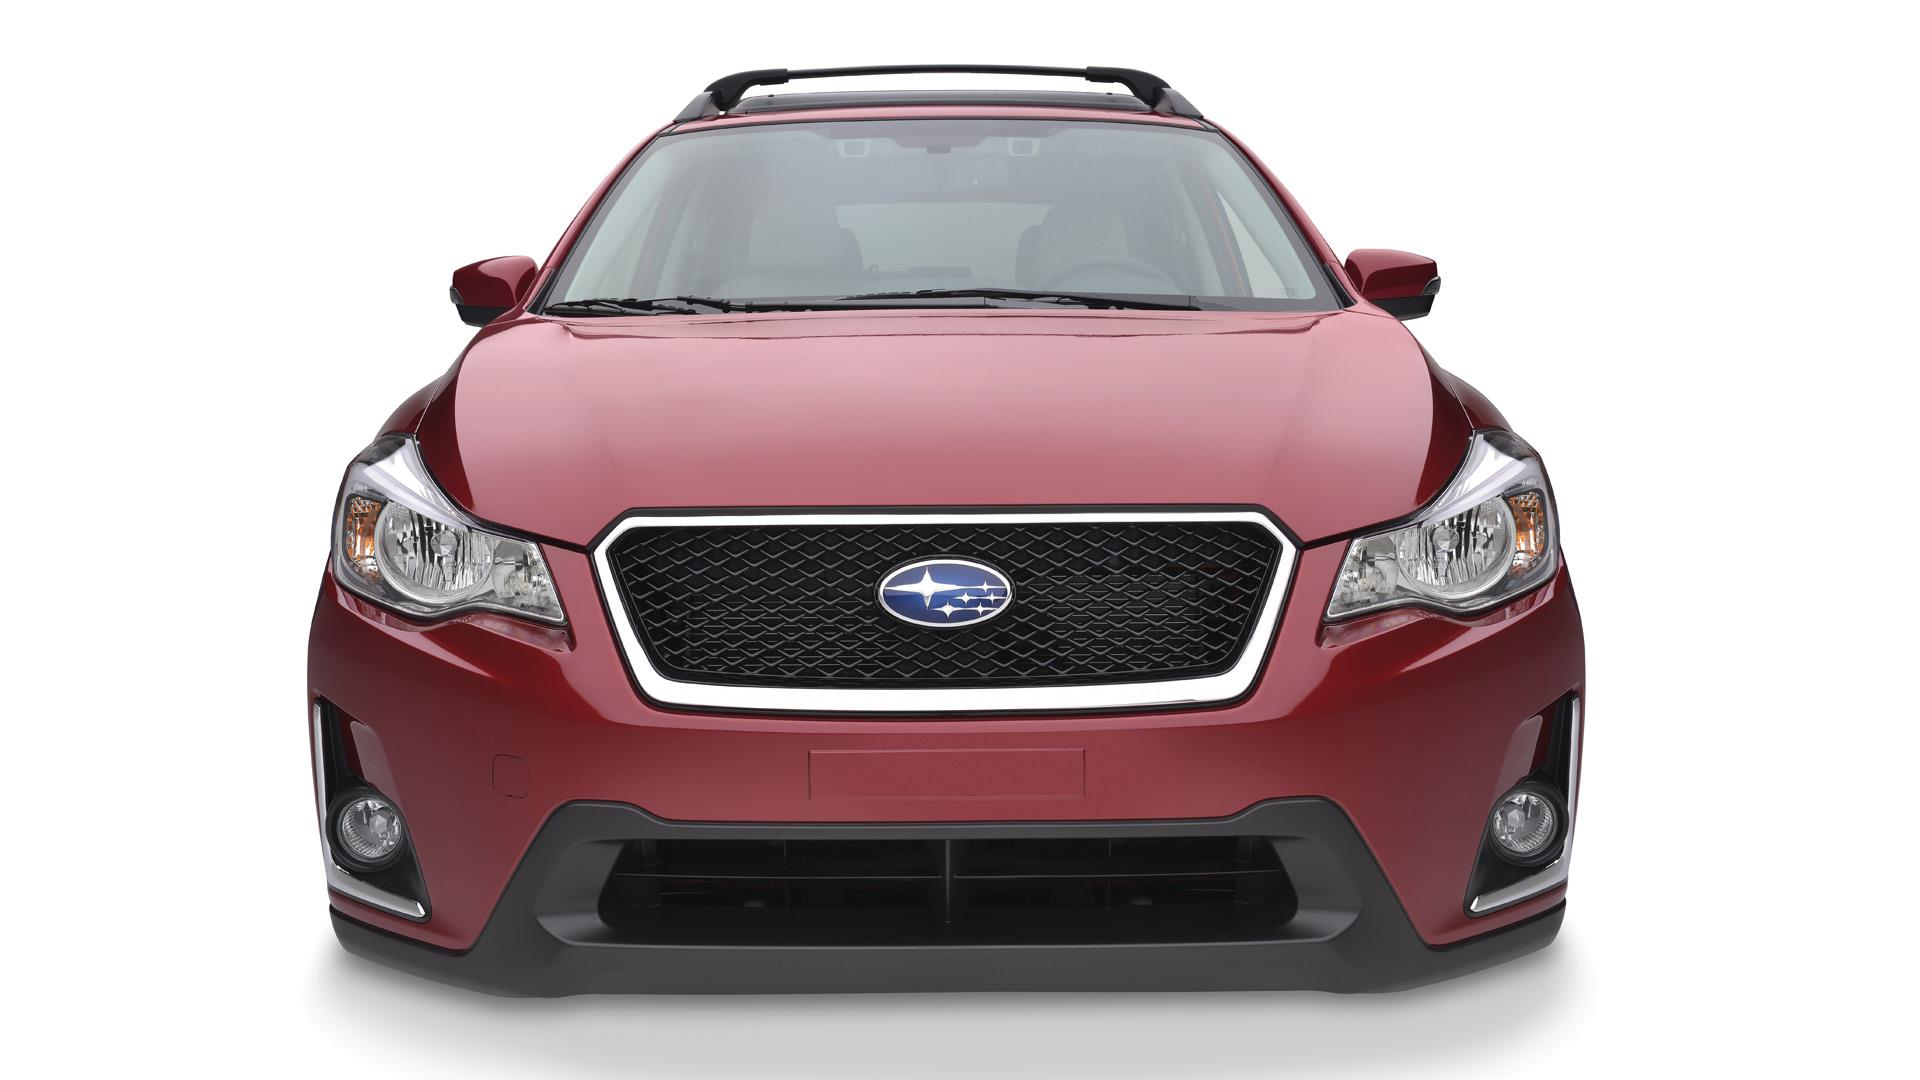 staffray.ml was founded in is one of the largest wholesalers of genuine OEM Subaru parts and accessories. In case you were wondering, OEM stands for Original Equipment Manufacturer. In other words, we only sell brand new Subaru parts (direct from the factory), not used or aftermarket parts.